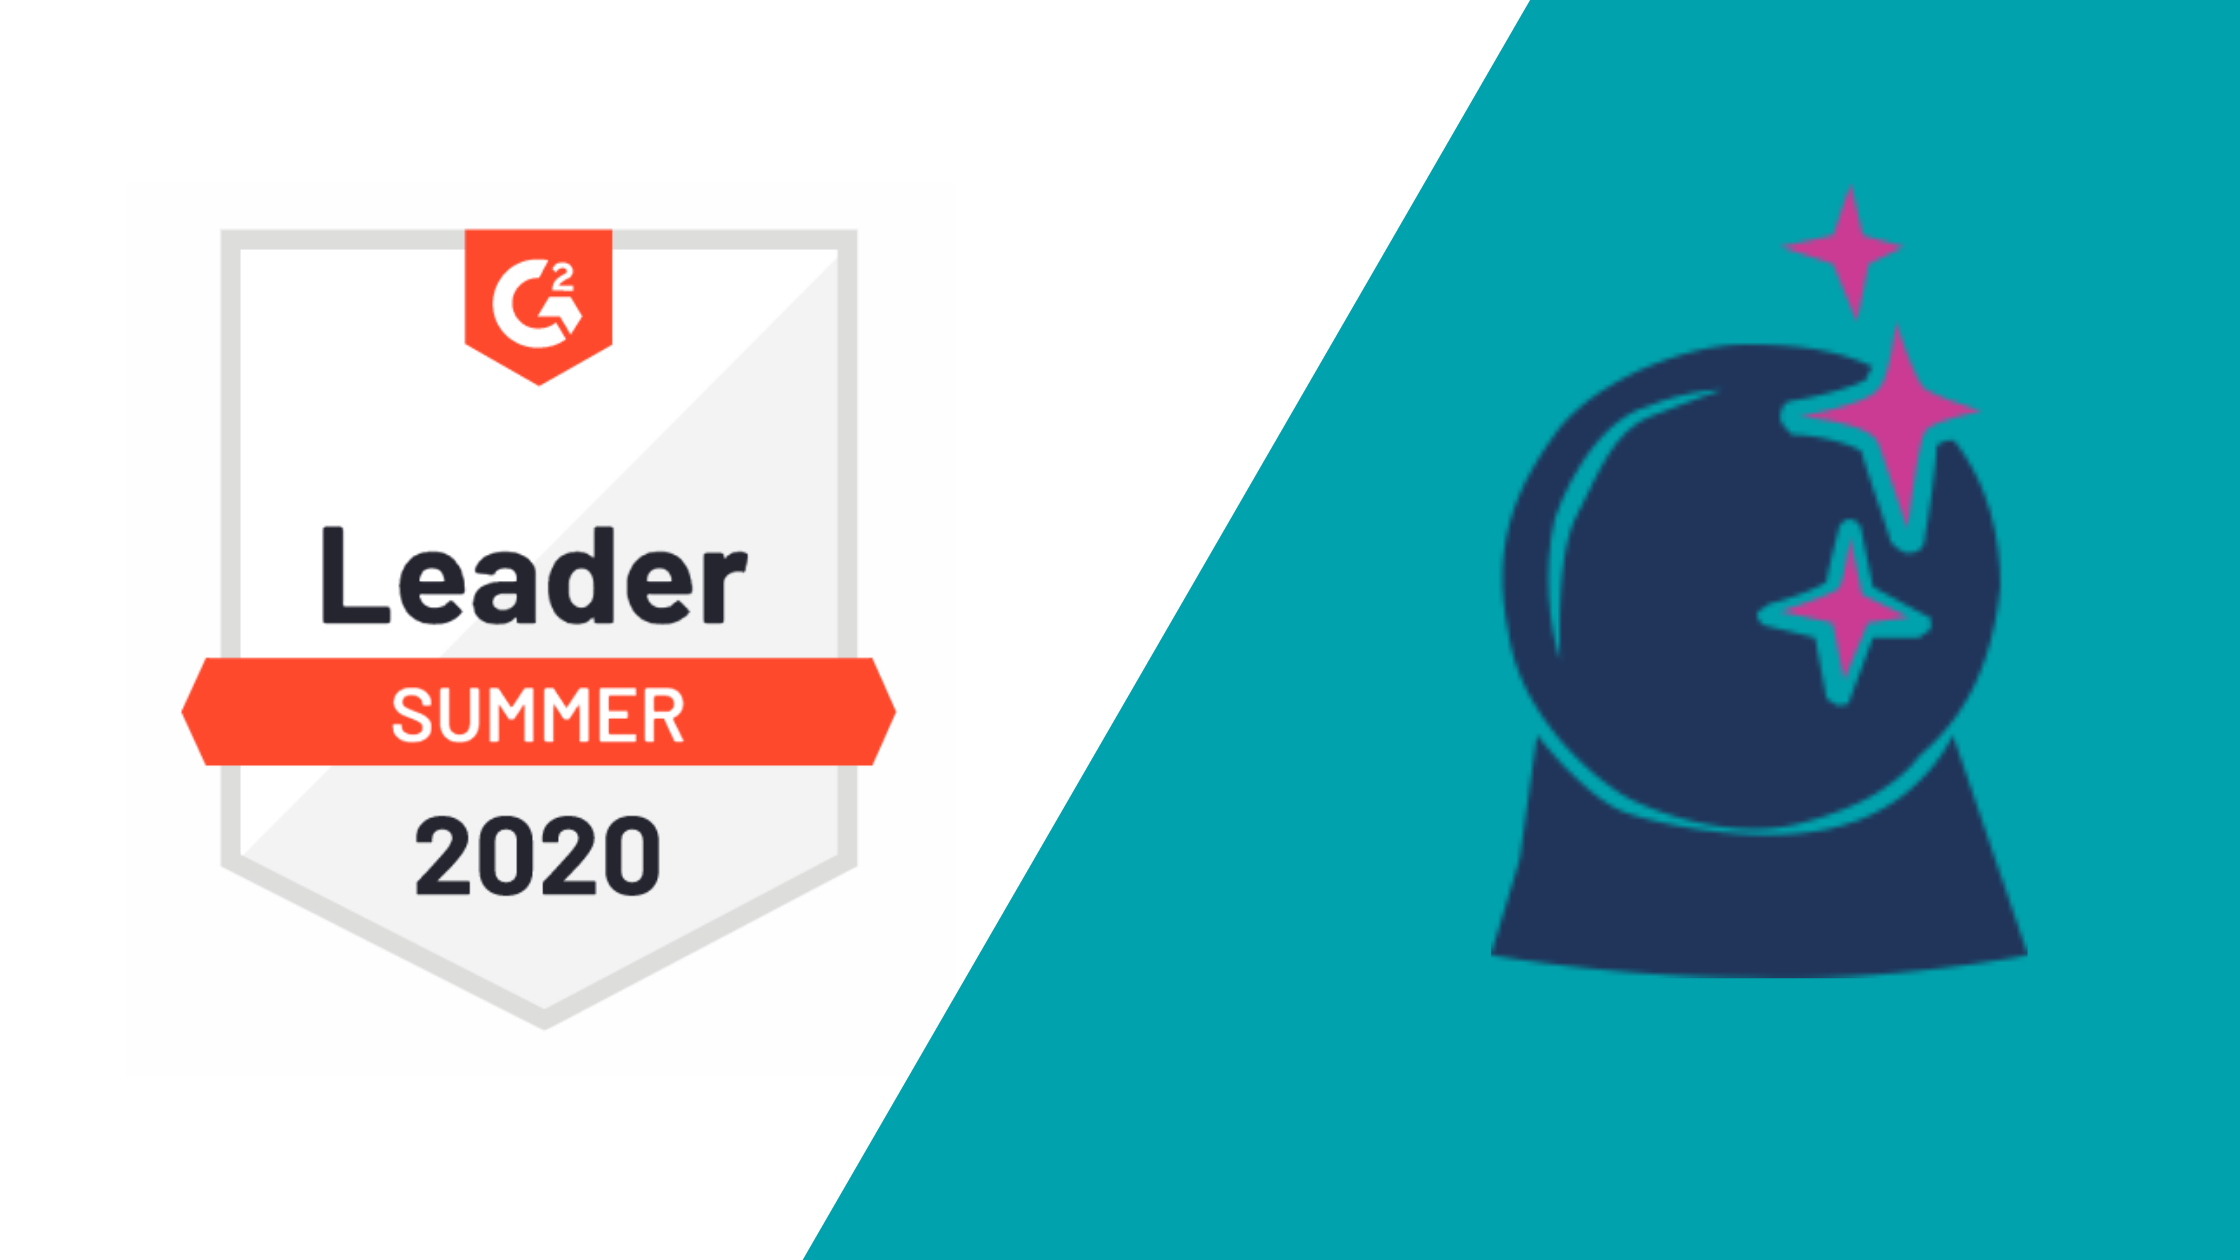 Pathmatics Ranked a Marketing Analytics Leader by G2 Crowd